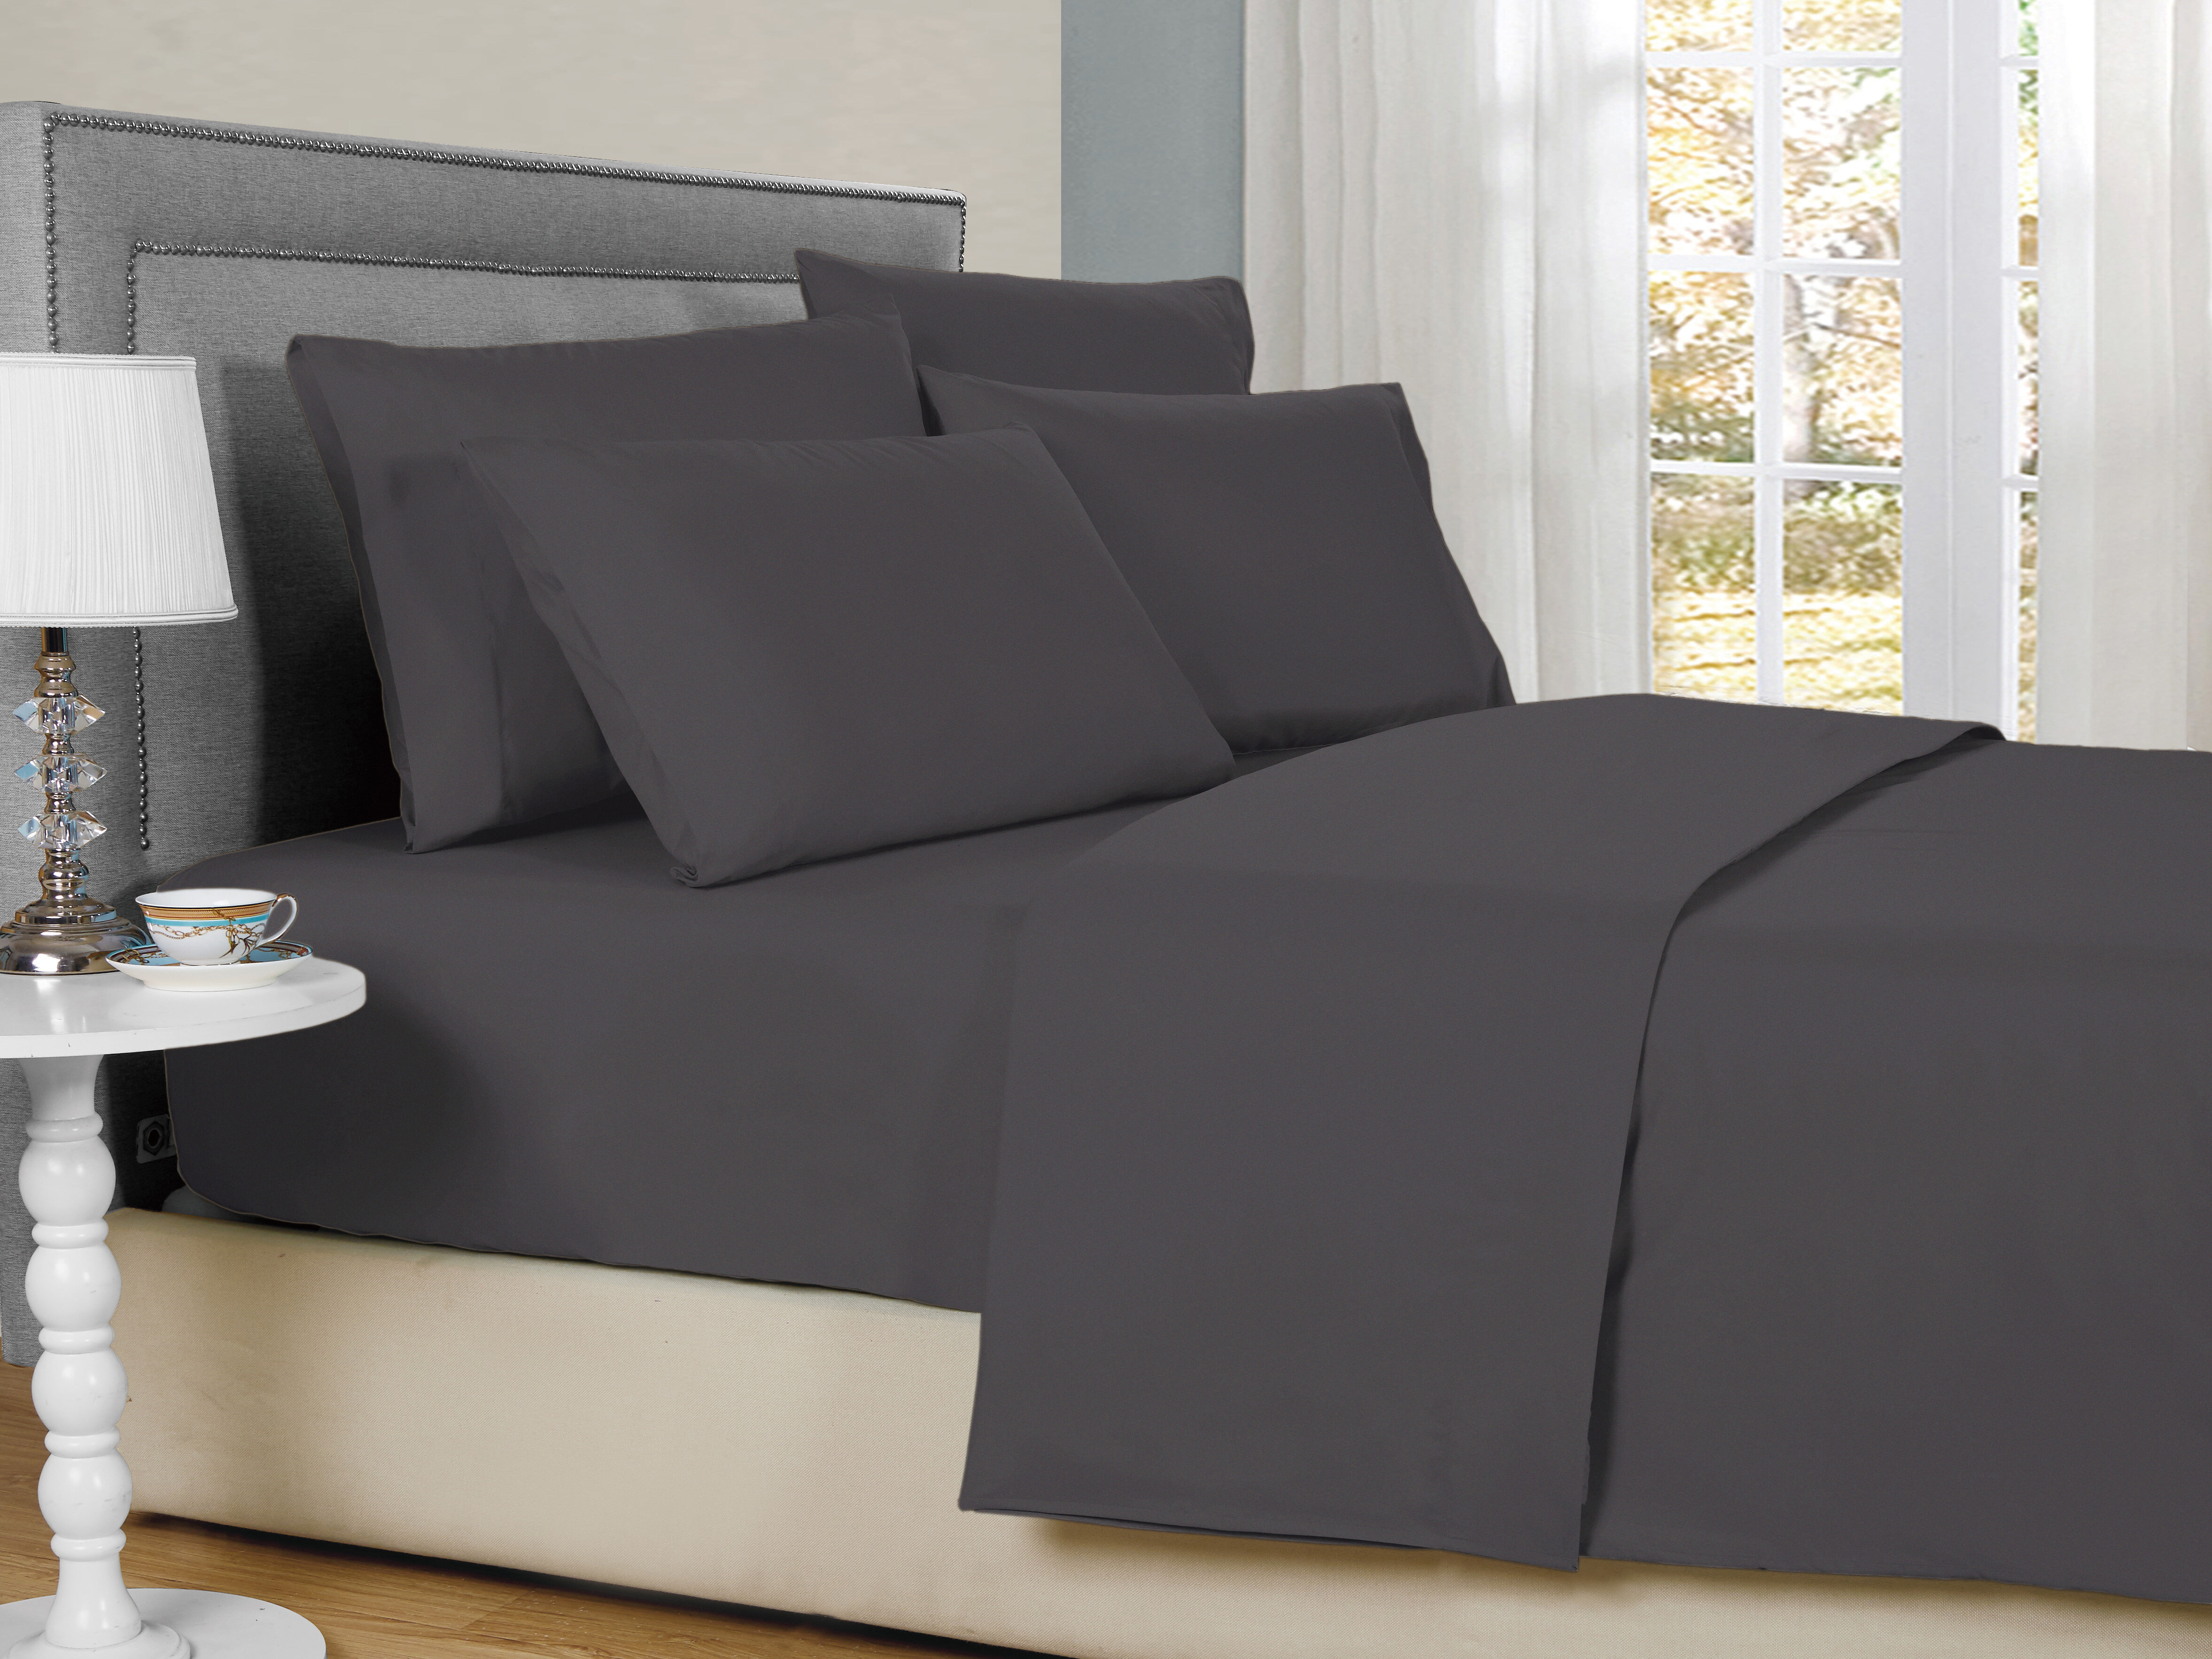 Heather Bamboo super king size bed fitted sheet Antibacterial. 100/% bamboo